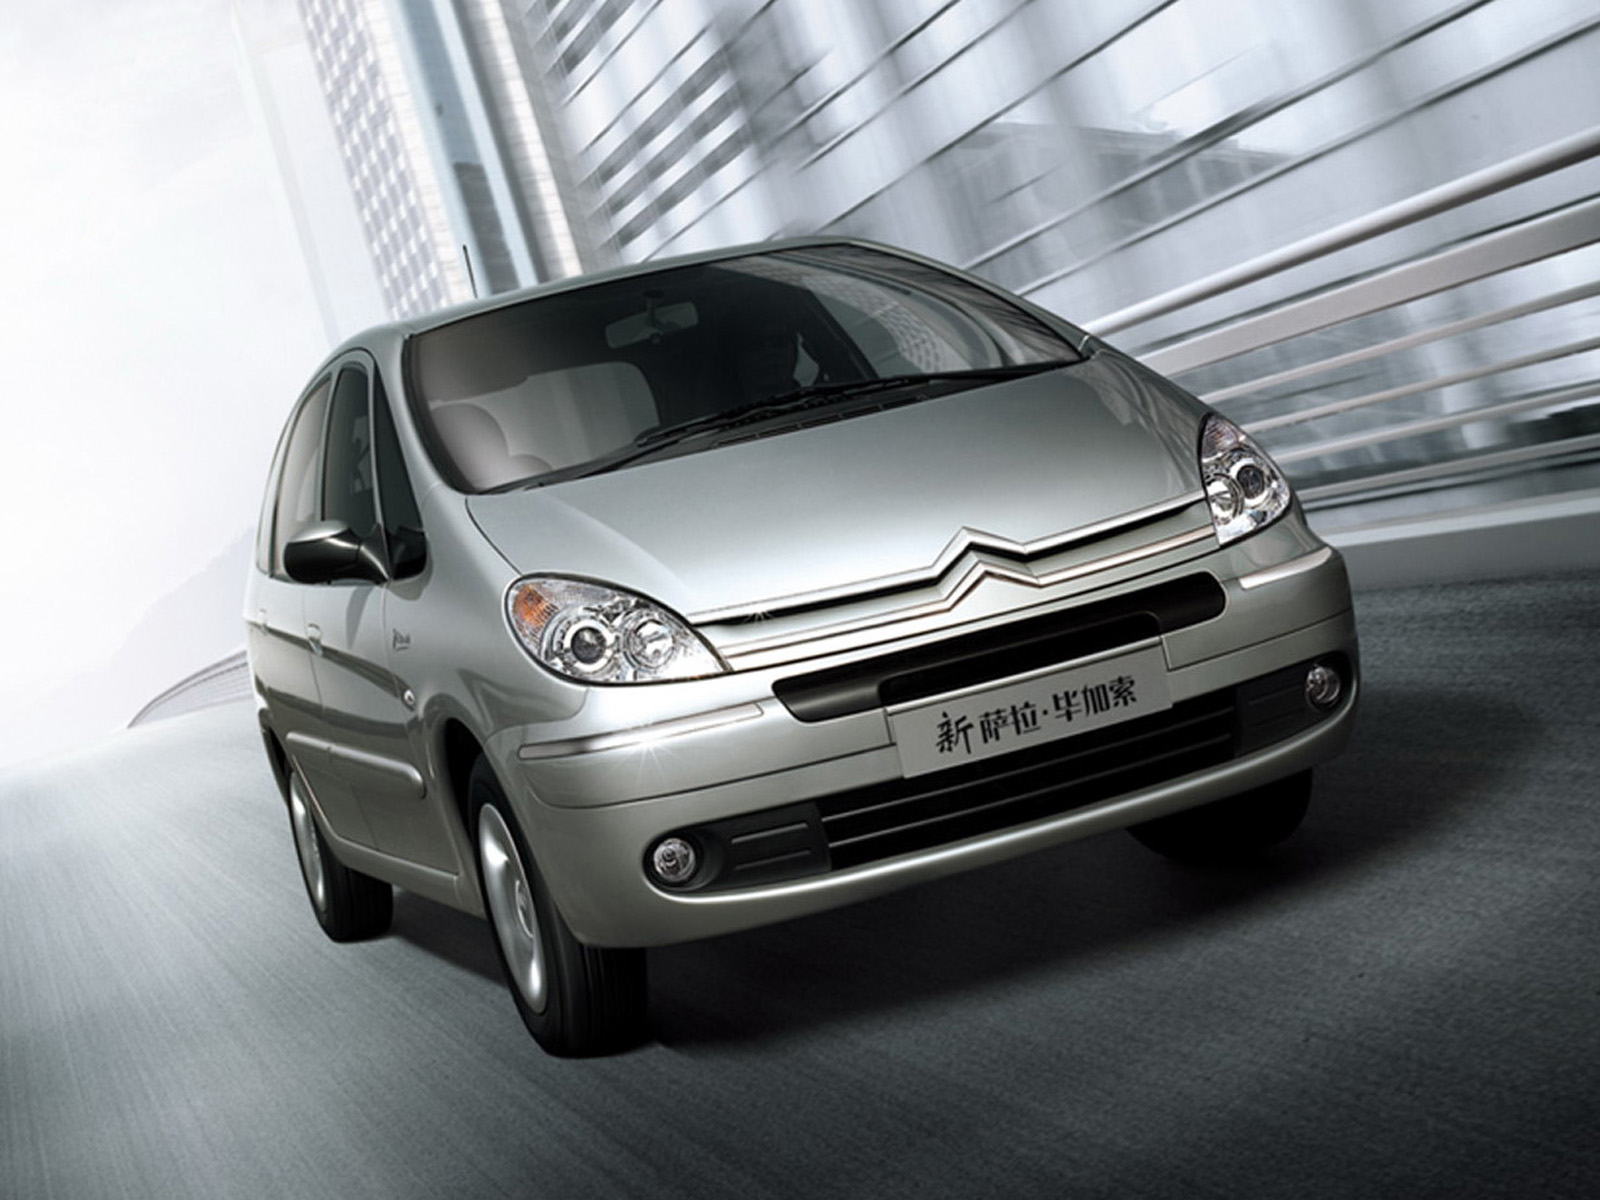 Citroen Xsara Picasso photo 105776